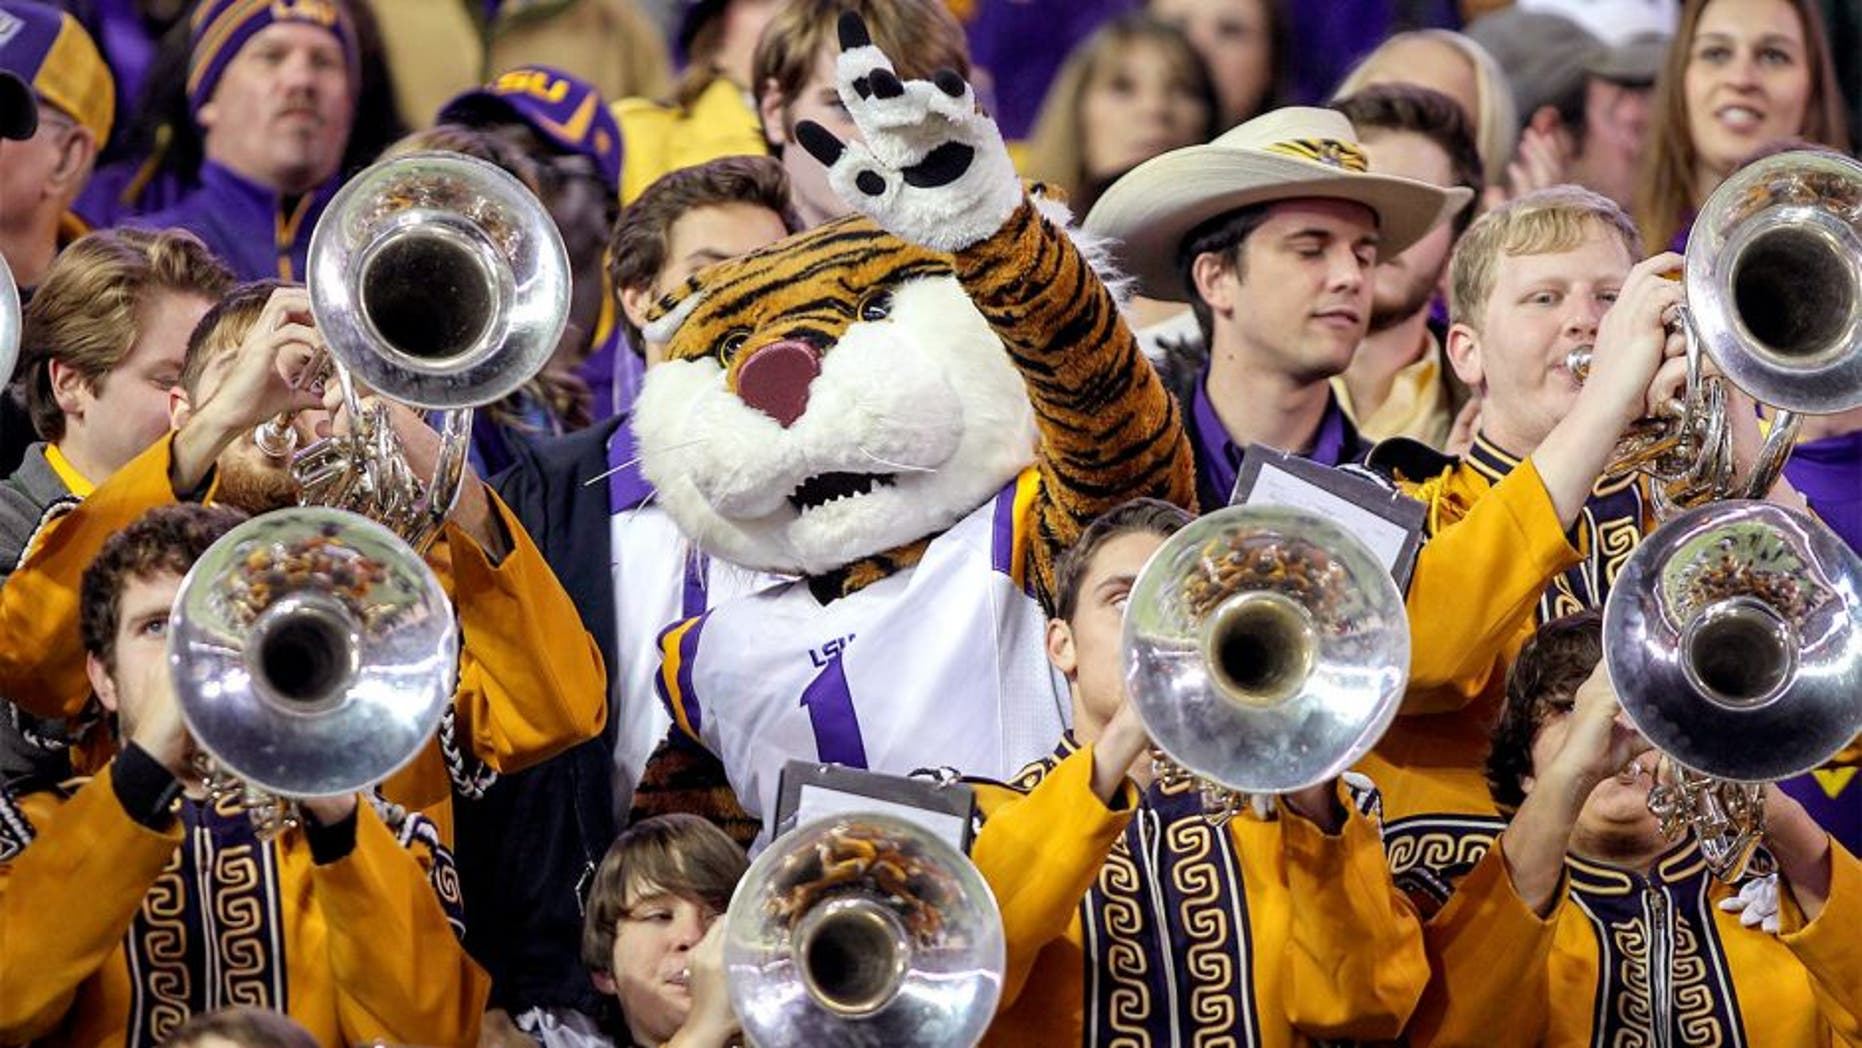 Nov 27, 2014; College Station, TX, USA; LSU Tigers mascot Mike the Tiger and the band perform during the game against the Texas A&M Aggies at Kyle Field. Mandatory Credit: Troy Taormina-USA TODAY Sports